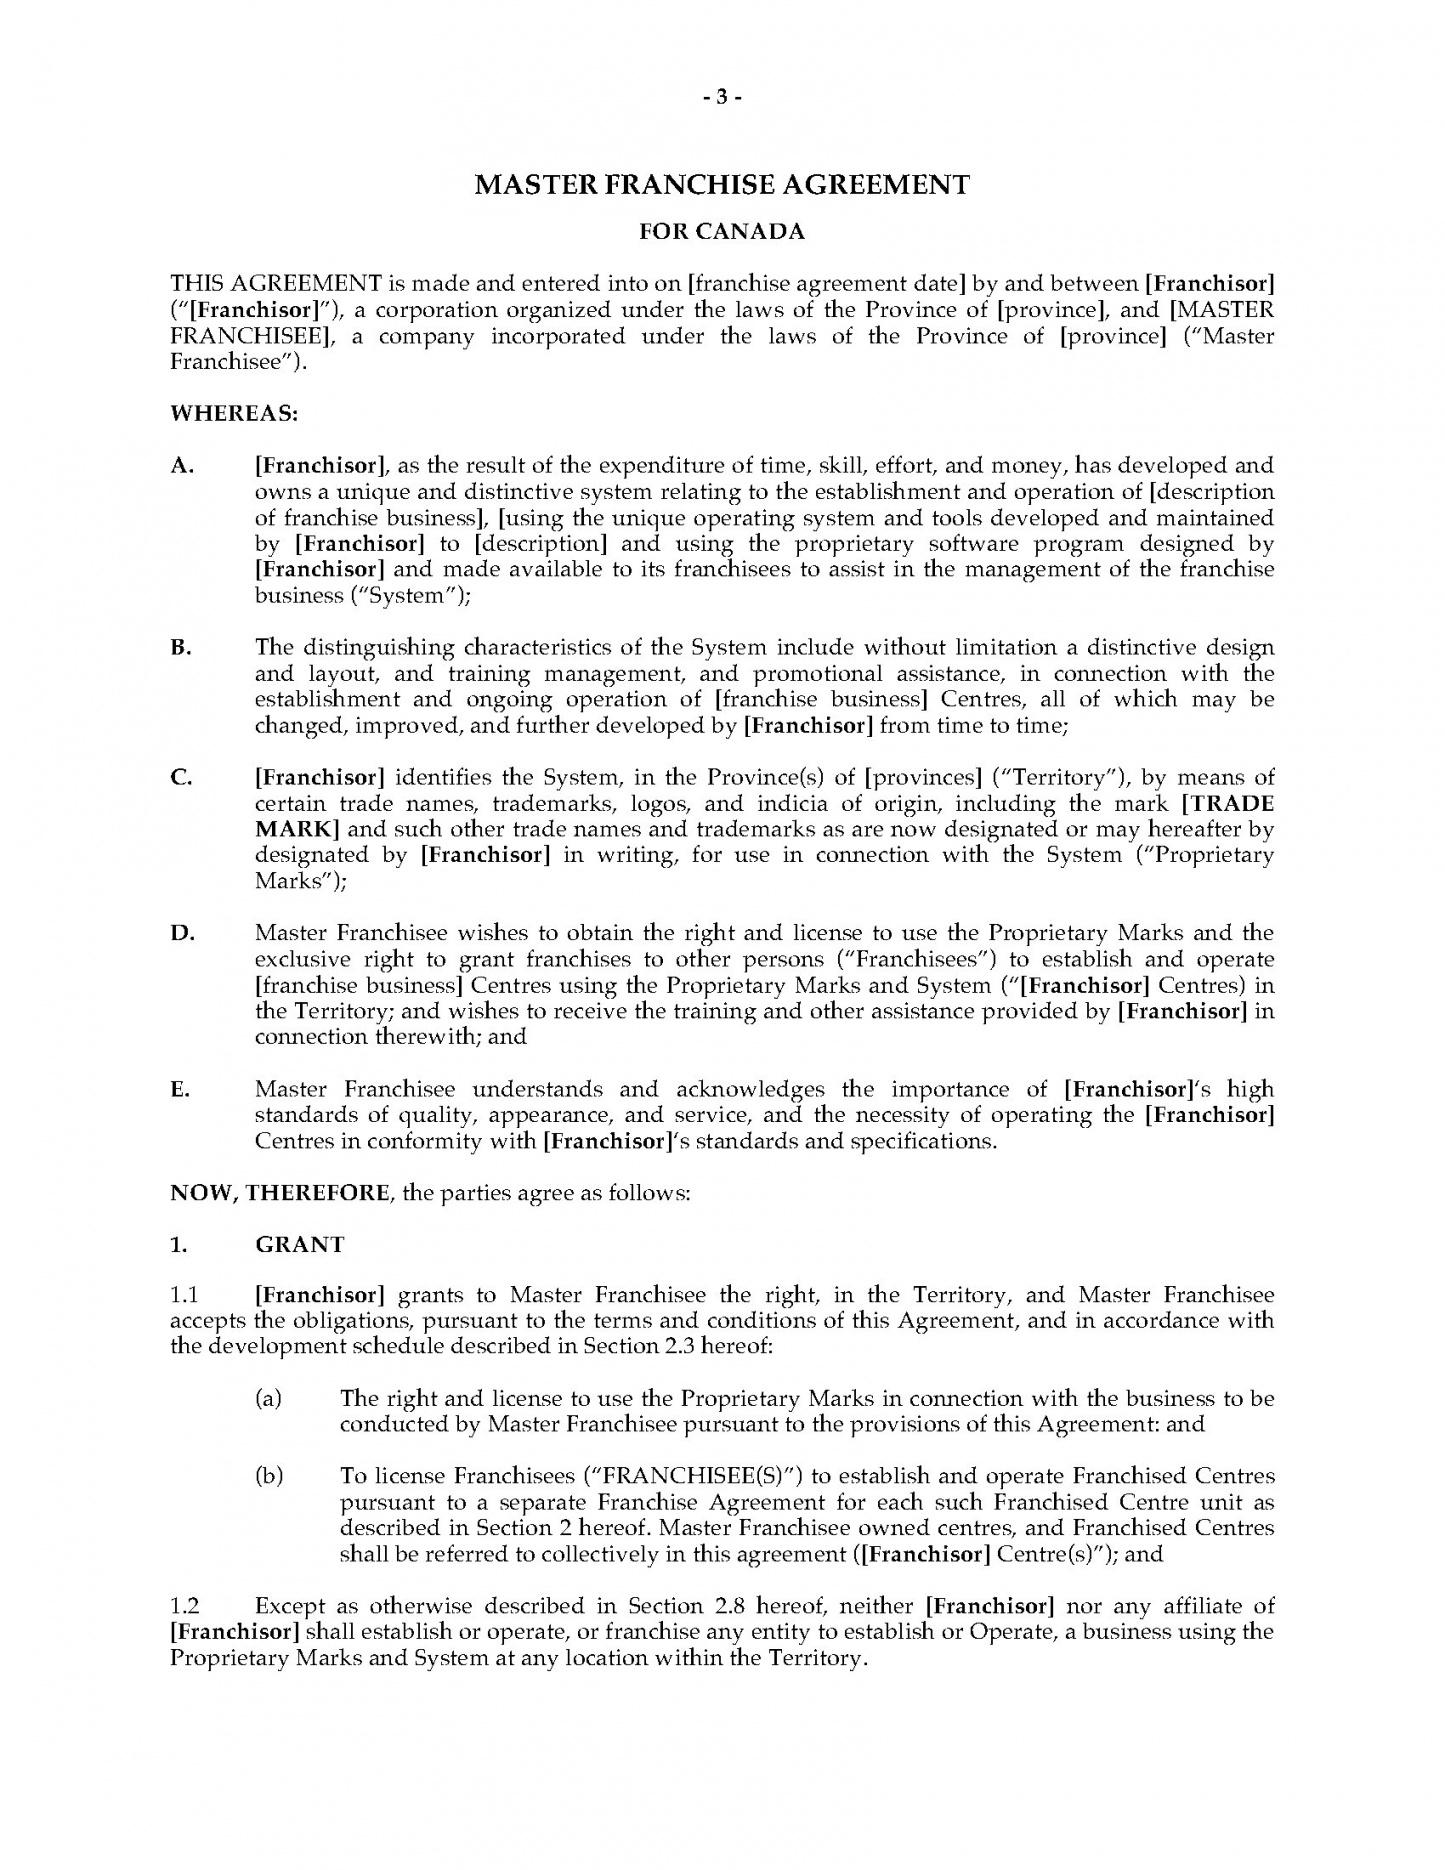 this is the canada franchise agreement for fast food restaurant  legal forms exclusive franchise agreement sample